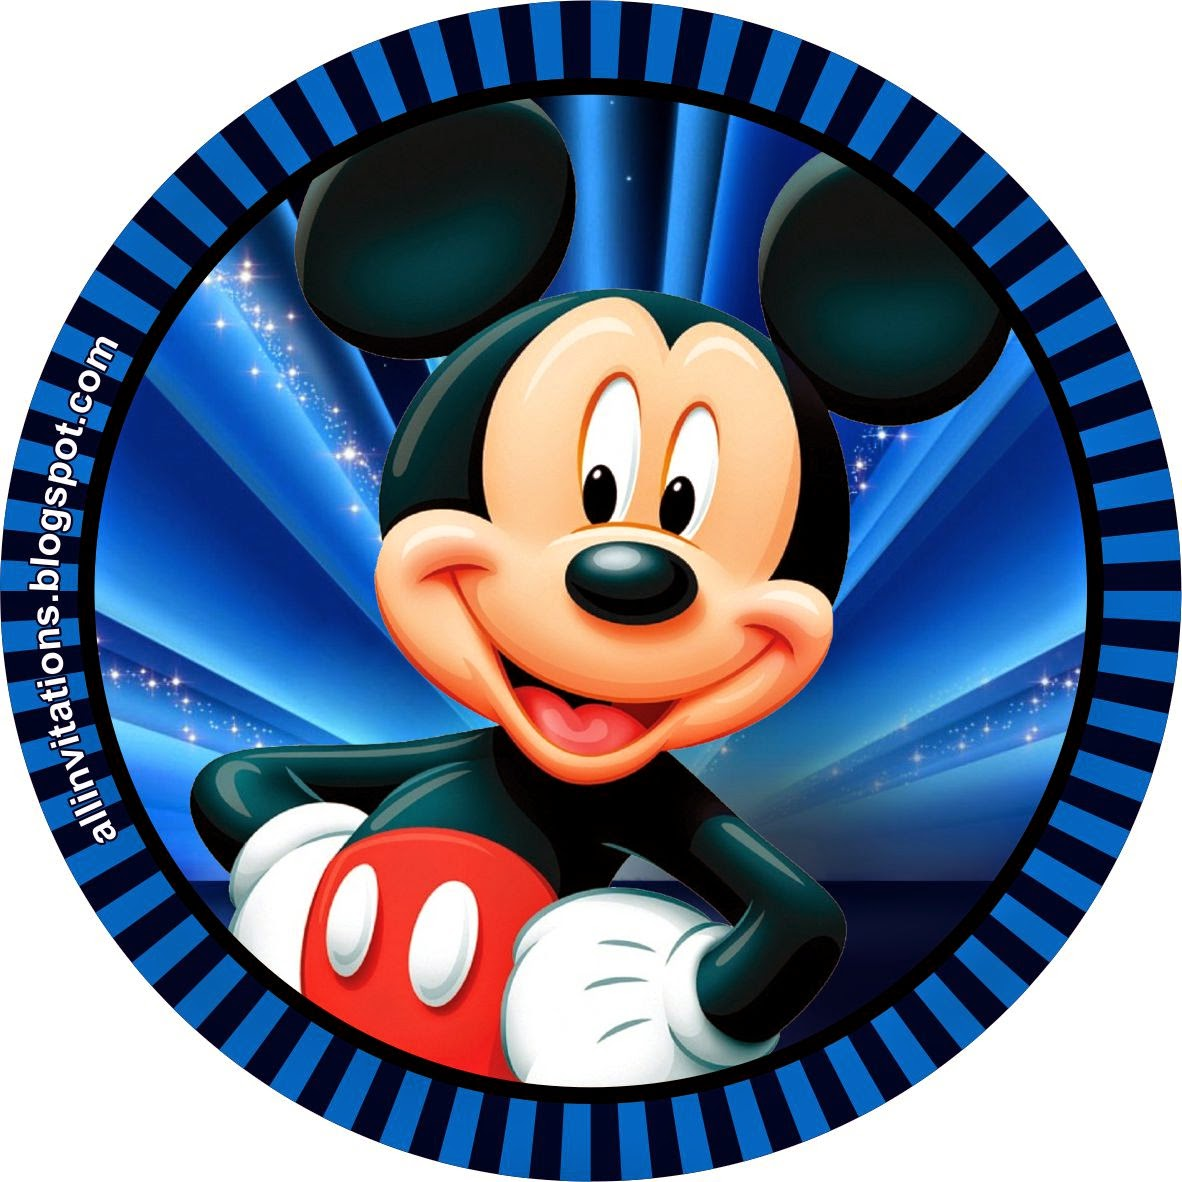 Find great deals on eBay for blue mickey mouse mug. Shop with confidence.